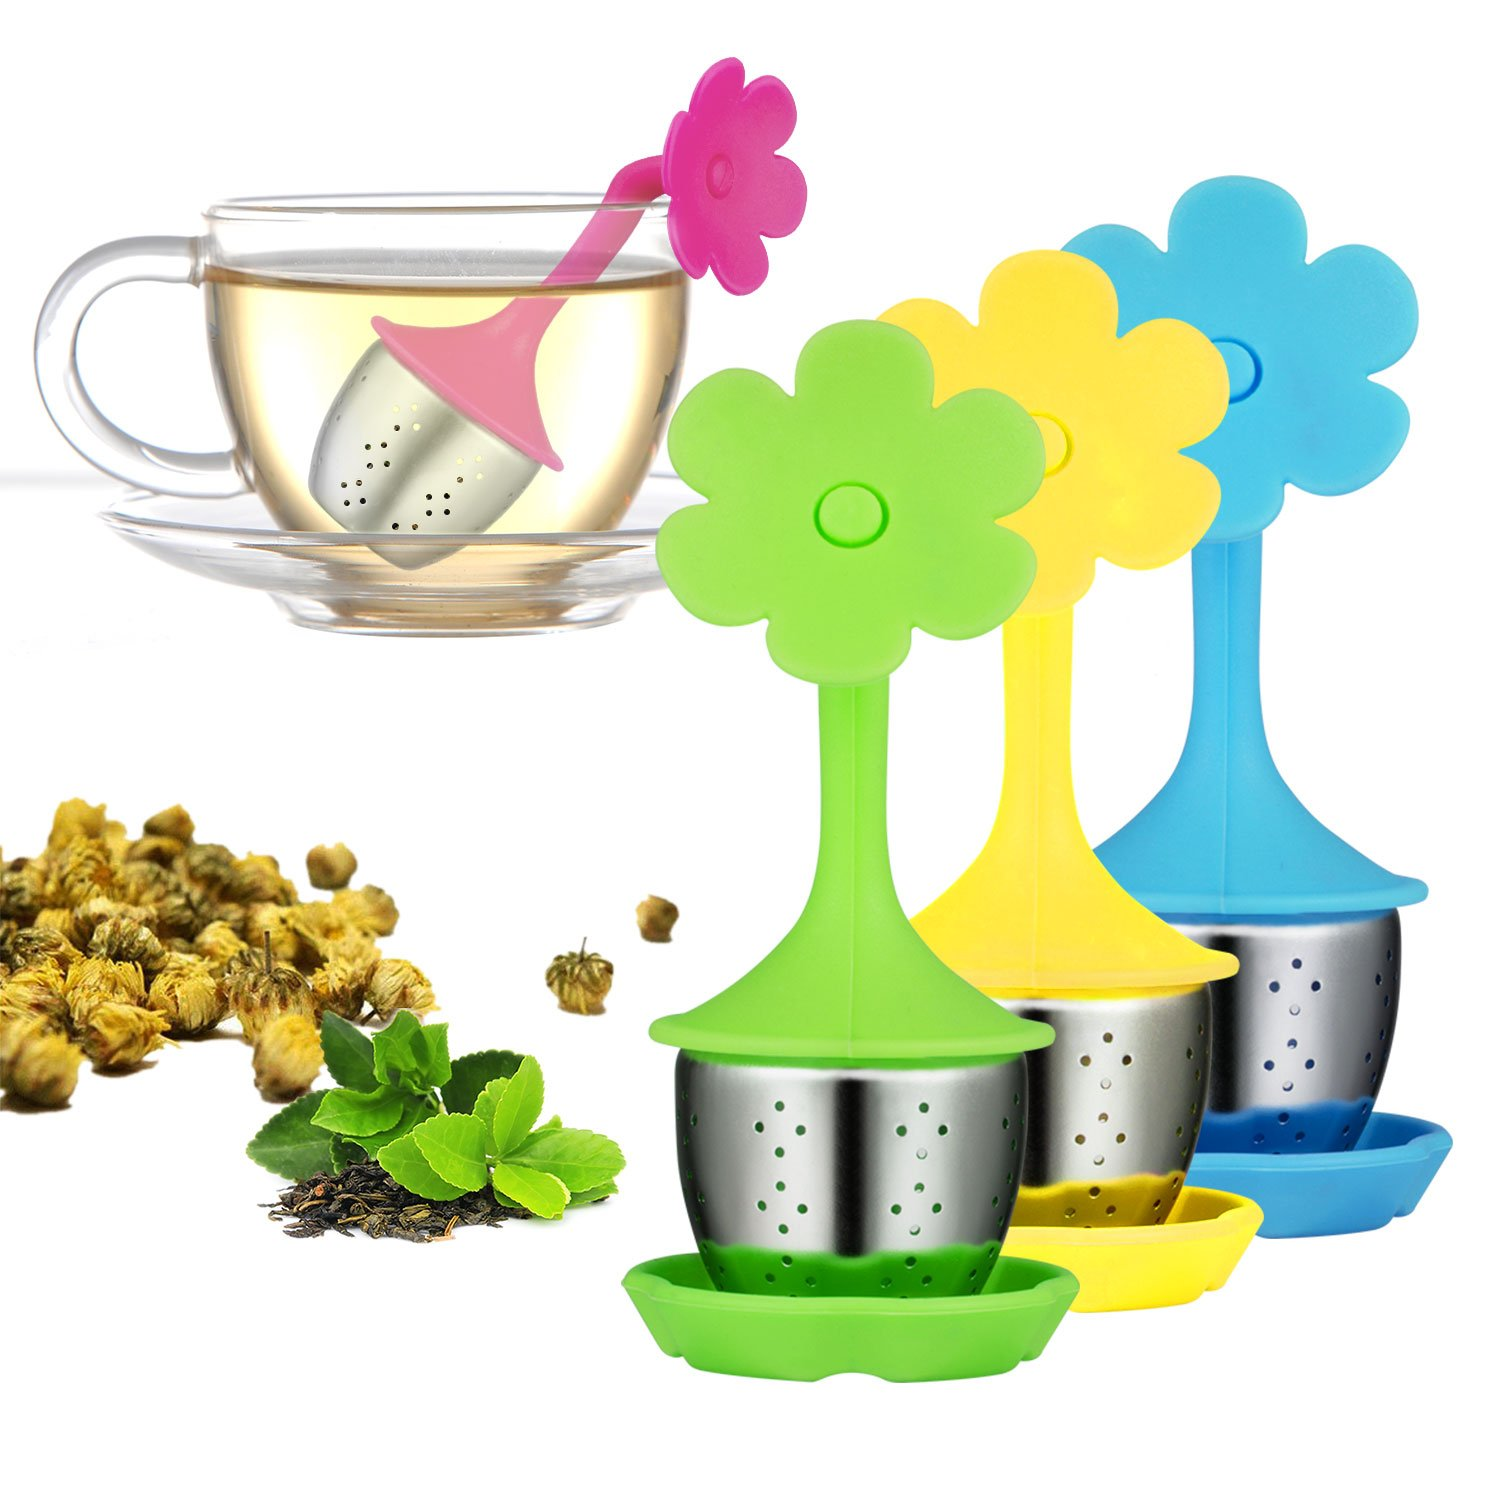 Tea Bag Infuser-Senbowe™ 3 Pack Colorful Genuine Premium Silicone Umbrella Reusable Tea Ball Infuser Strainer Steeper Set for Loose Leaves & Herbal Teas-Great Gift for Tea Lovers